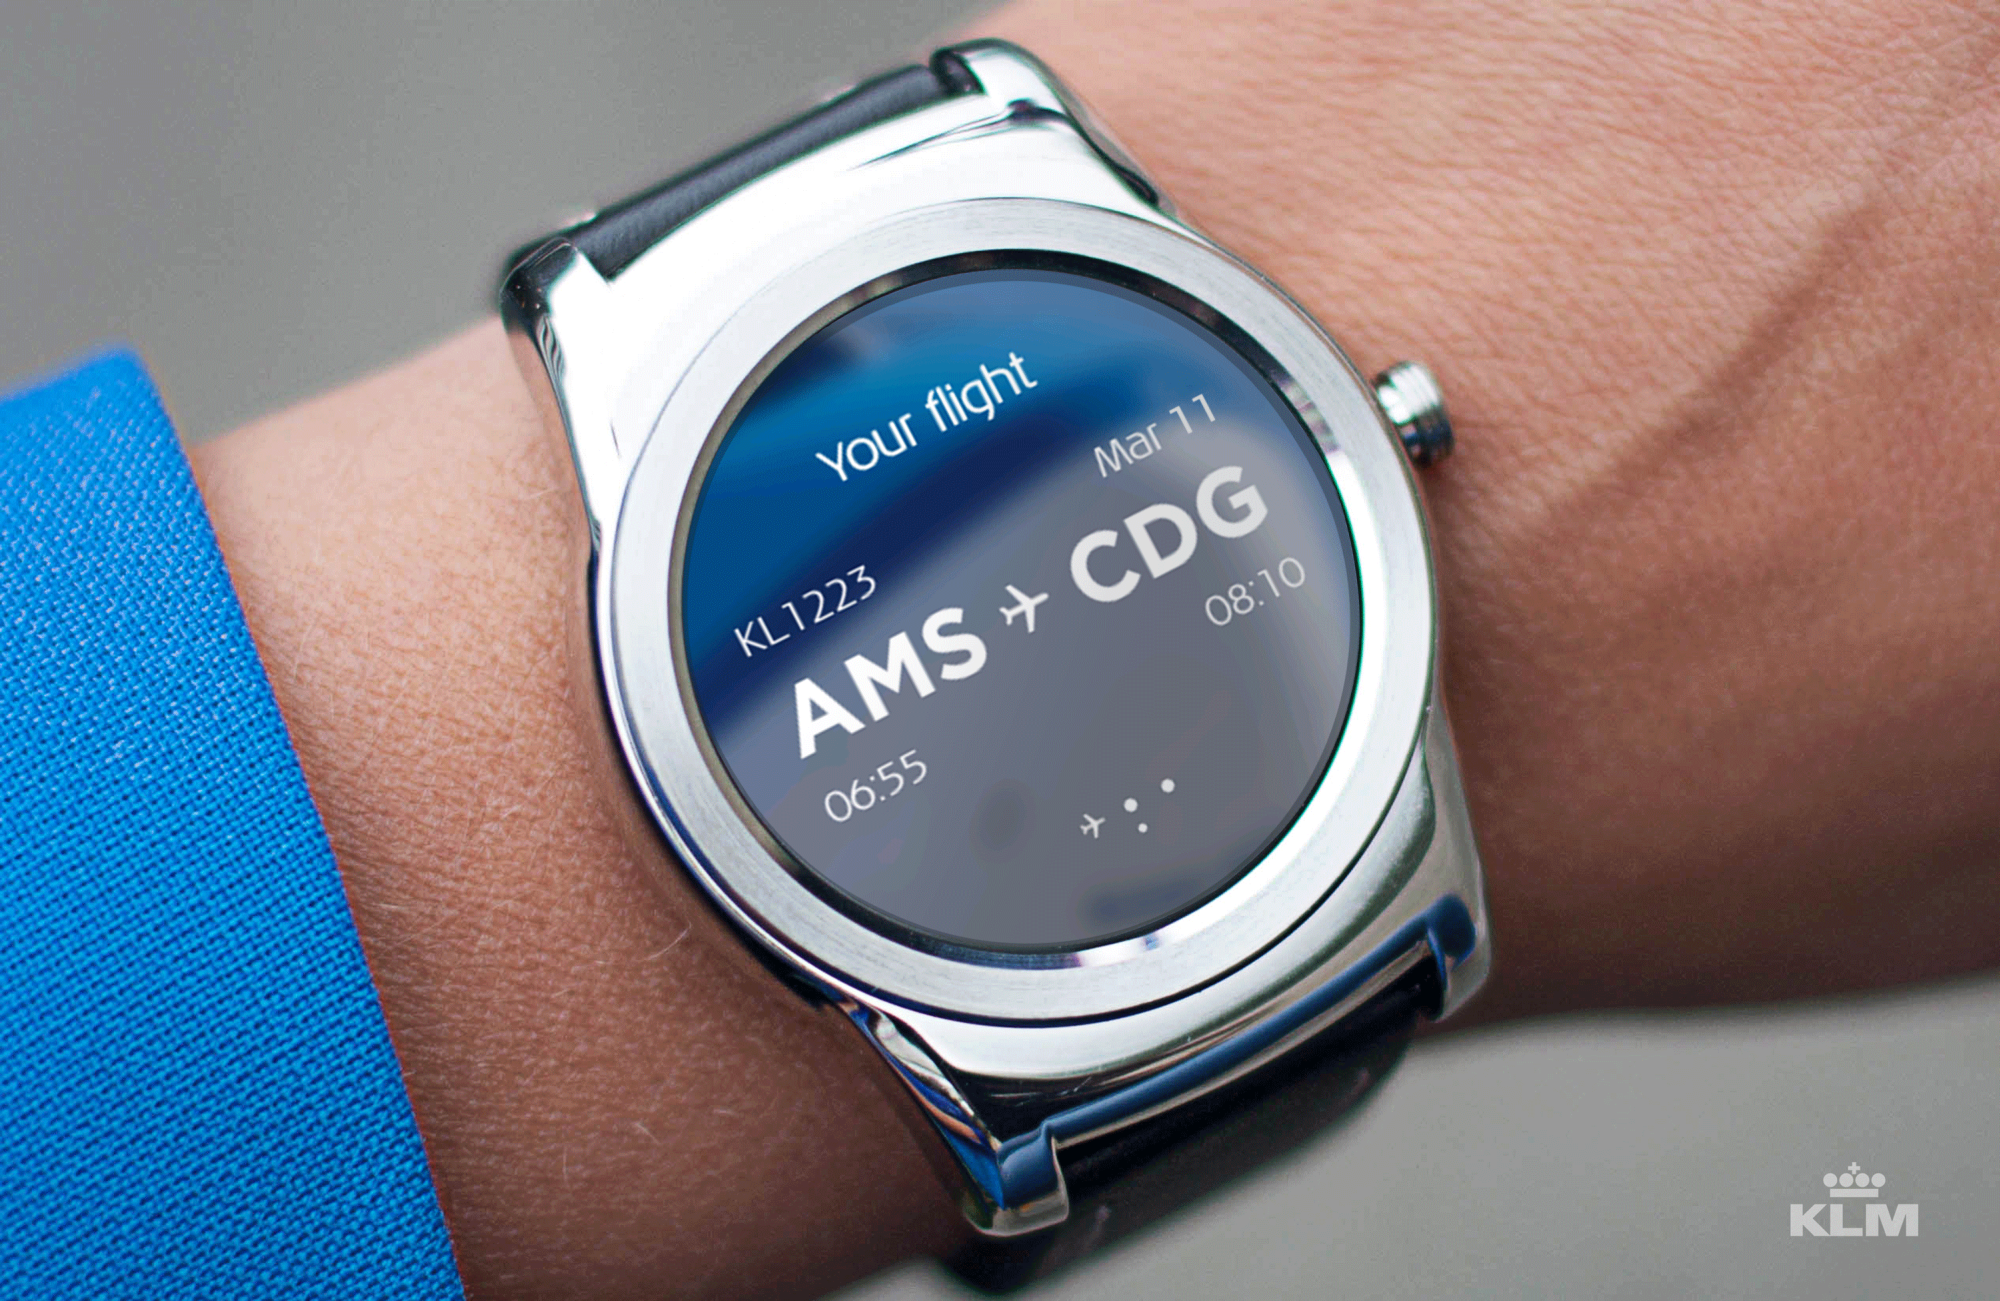 KLM with new cutting edge Android Smartwatch App